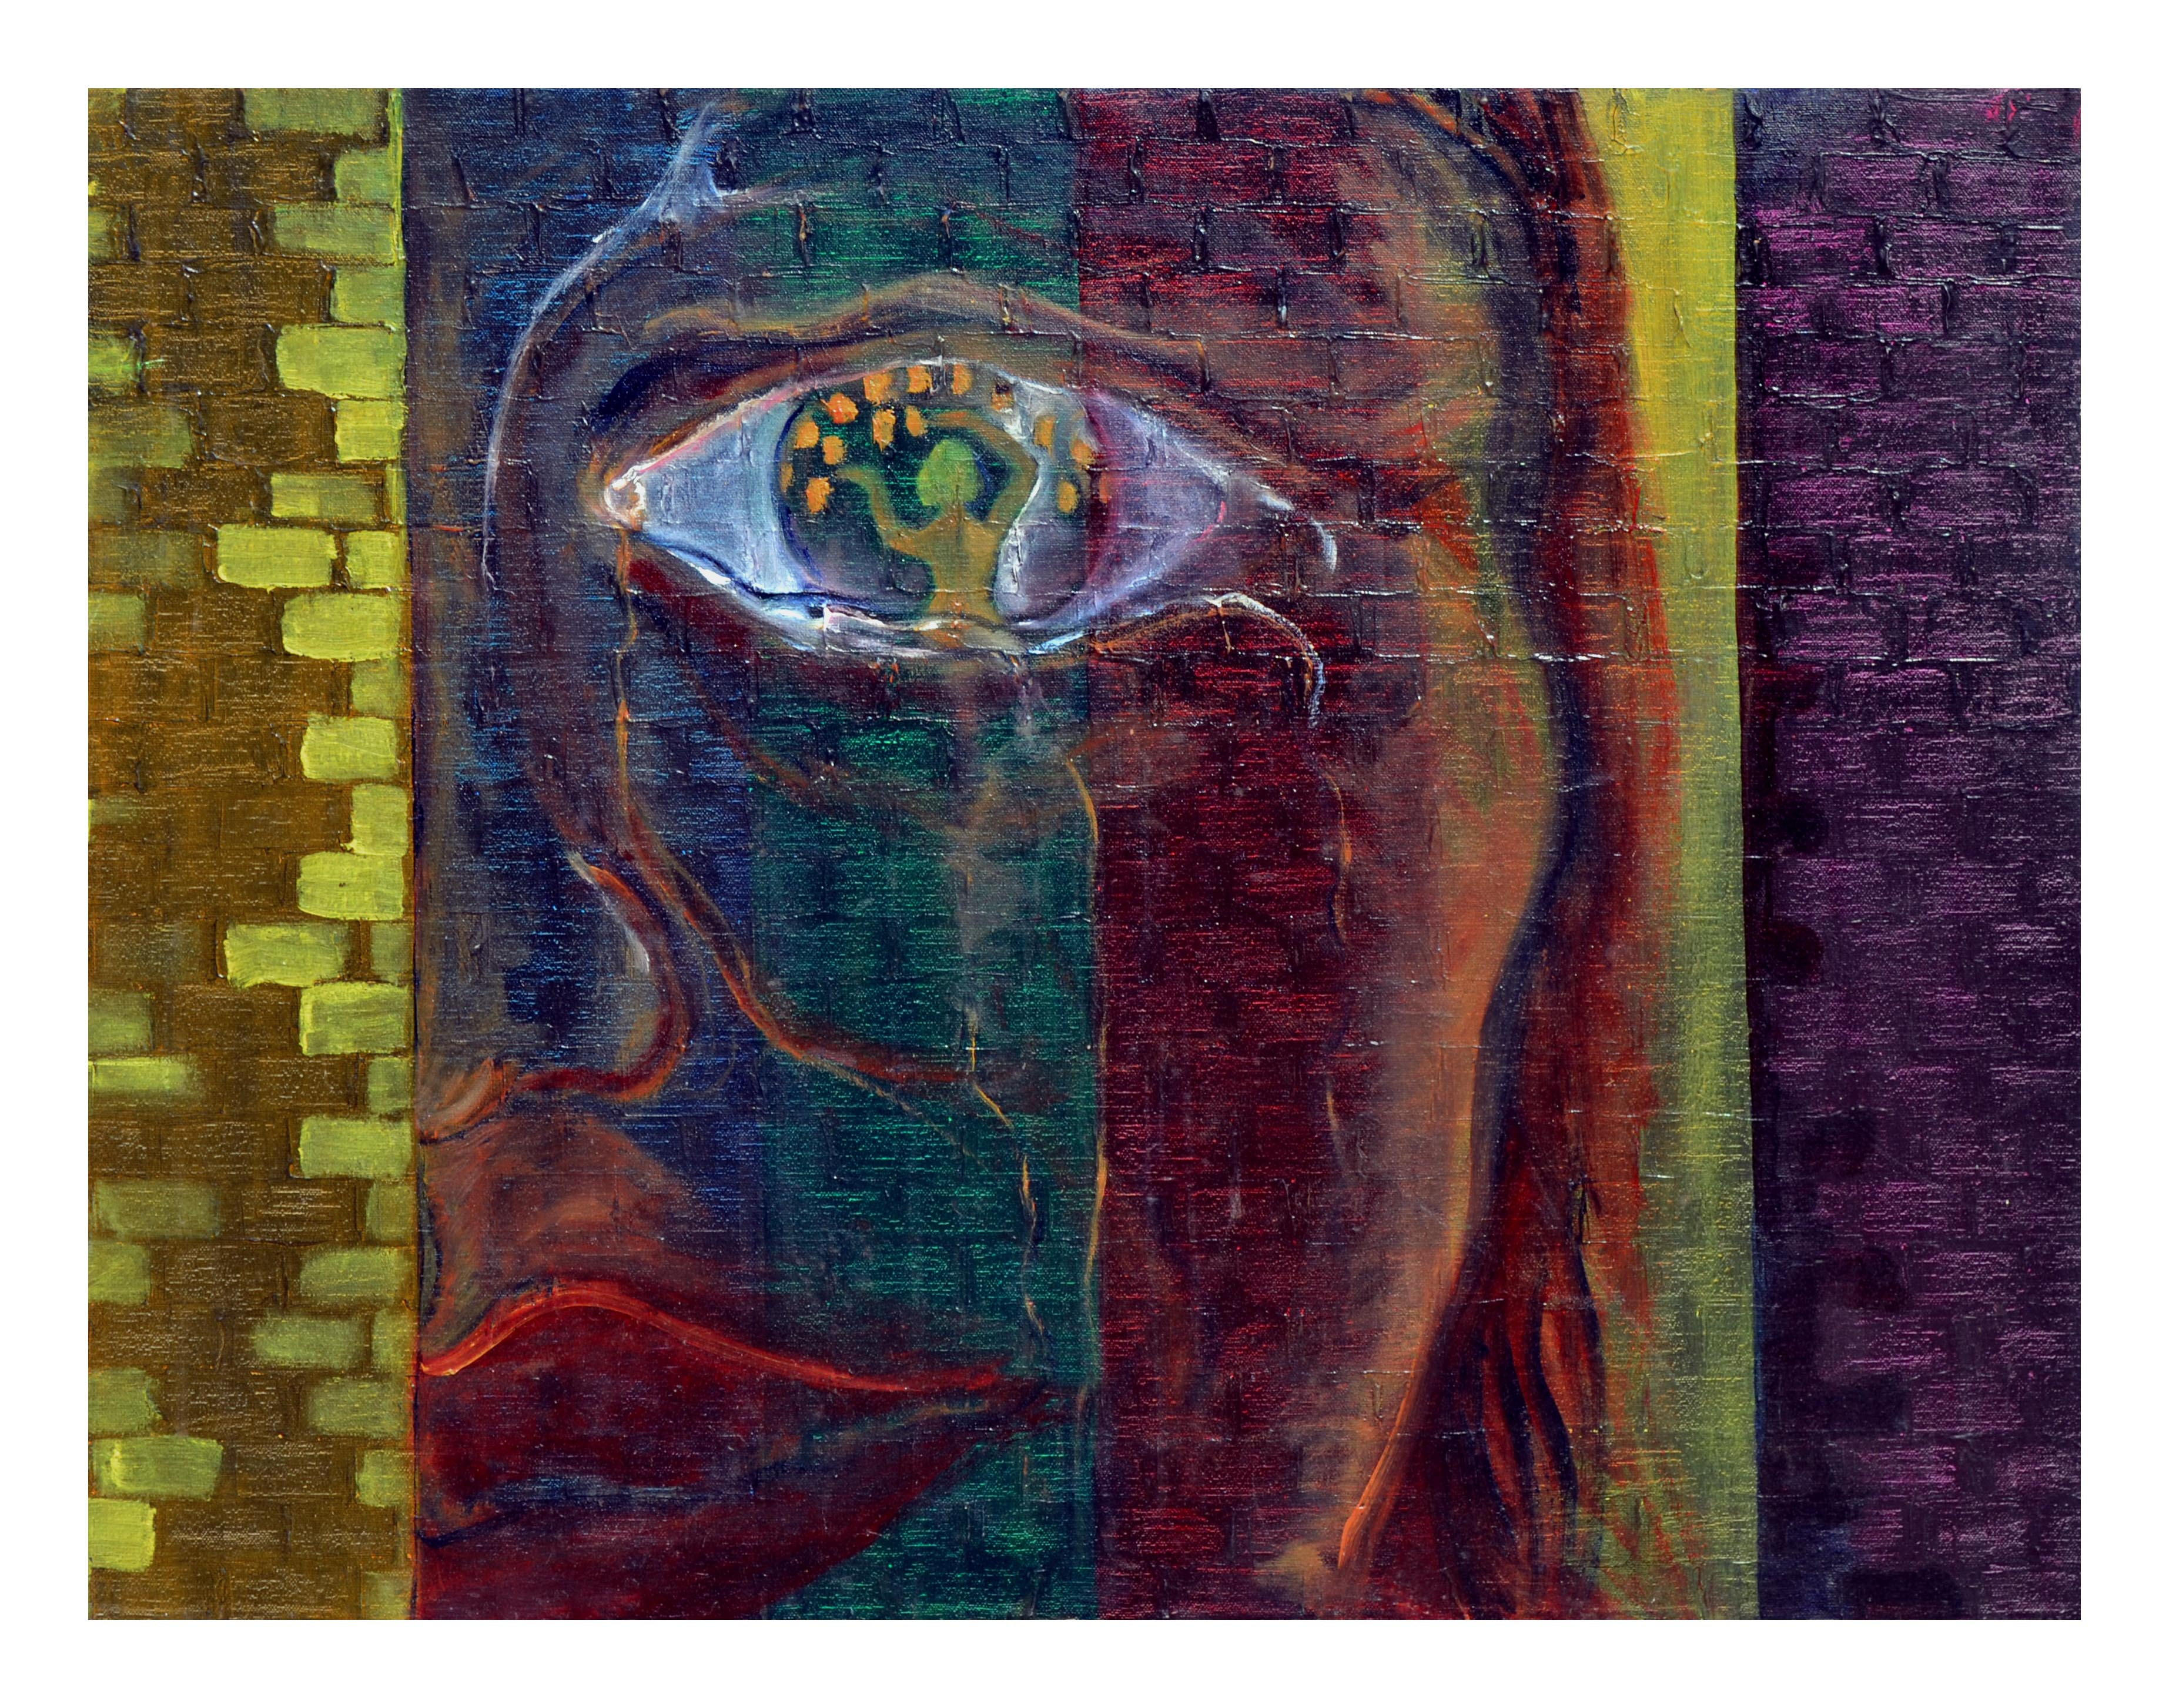 Abstract Figurative Vision